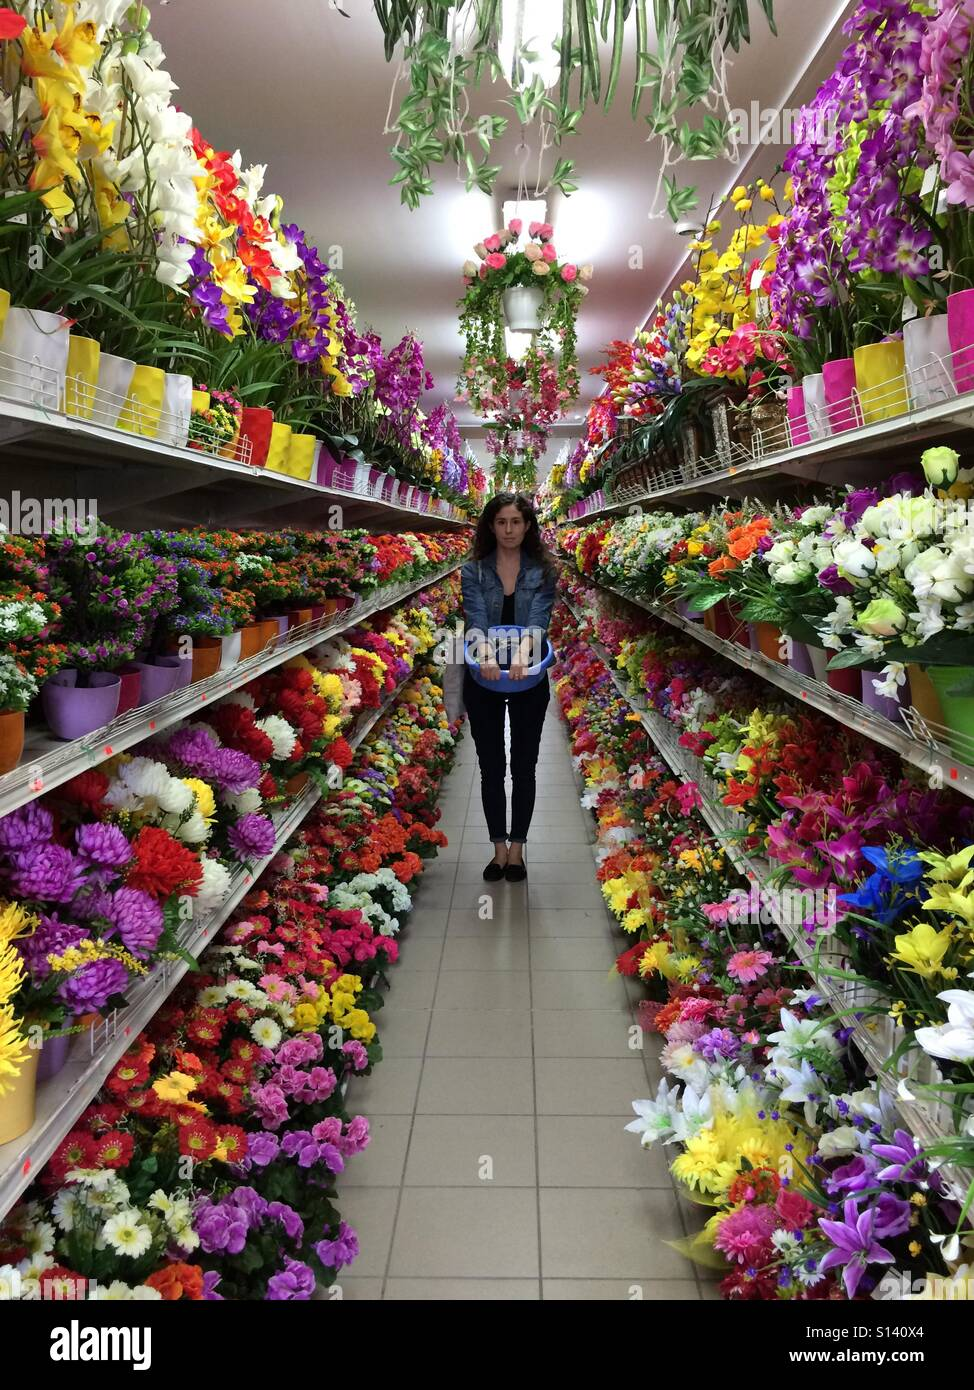 2bd9085cc3 A girl in jeans jacket standing surrounded by flowers Stock Photo ...